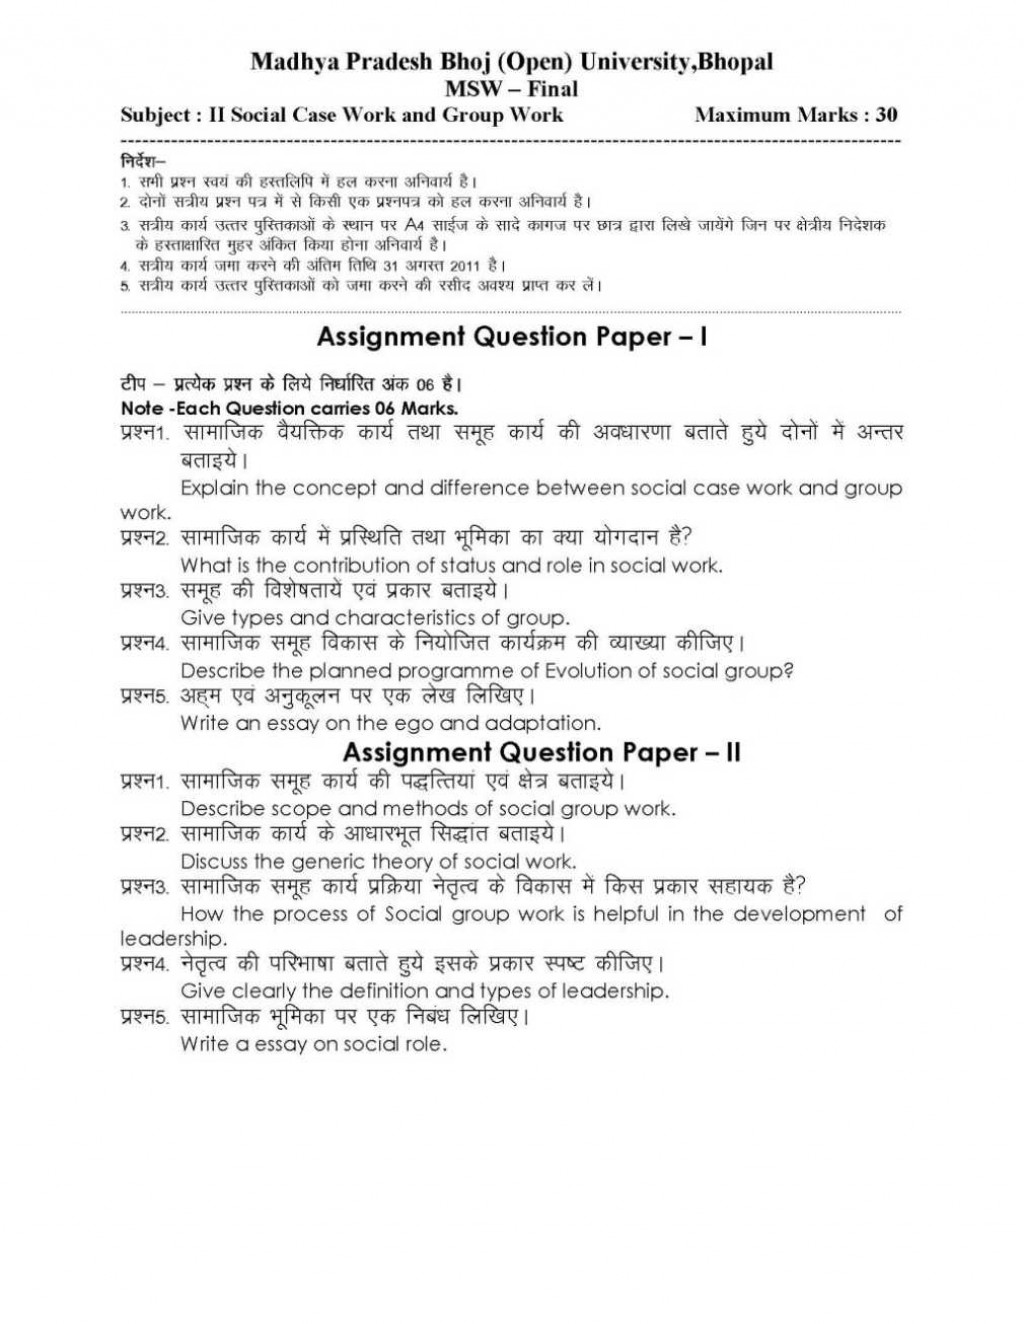 012 Bhoj University Bhopal Msw Essay Example Dreaded Definition Examples Love Beauty Large